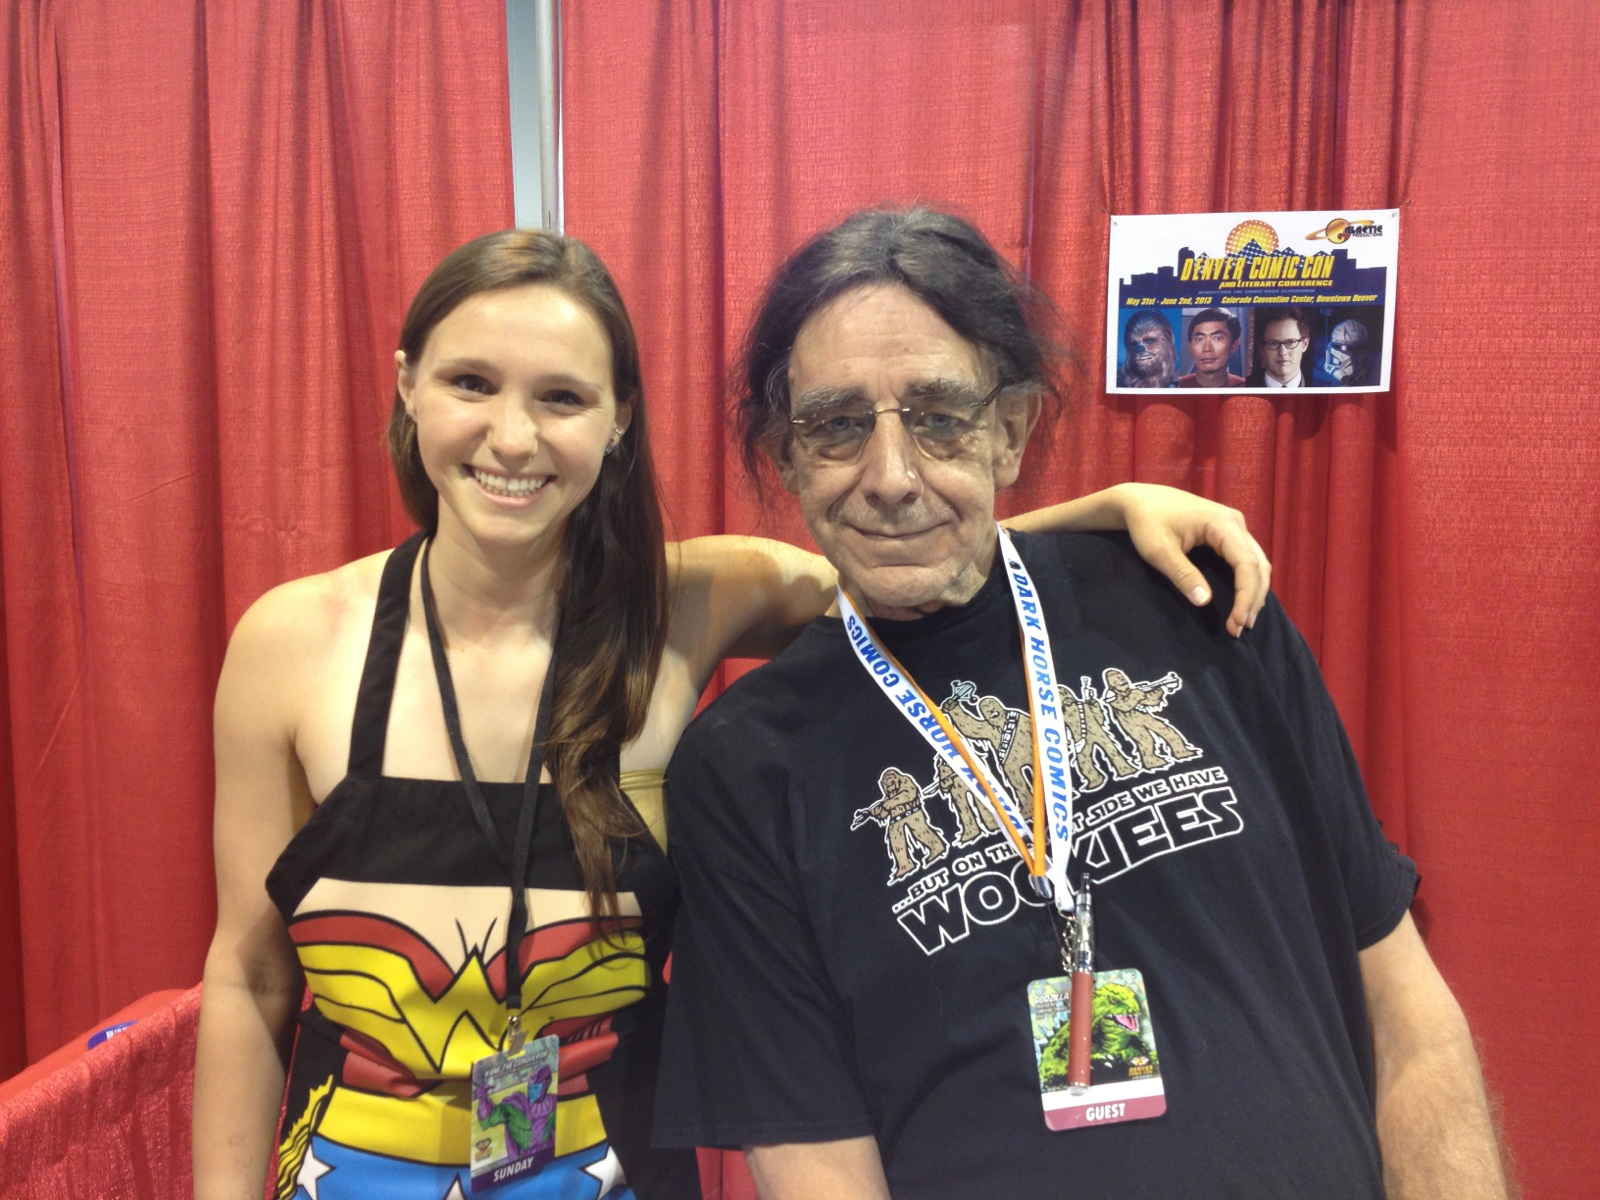 Alana with Peter Mayhew (who played Chewbacca) --she can't contain her happiness here